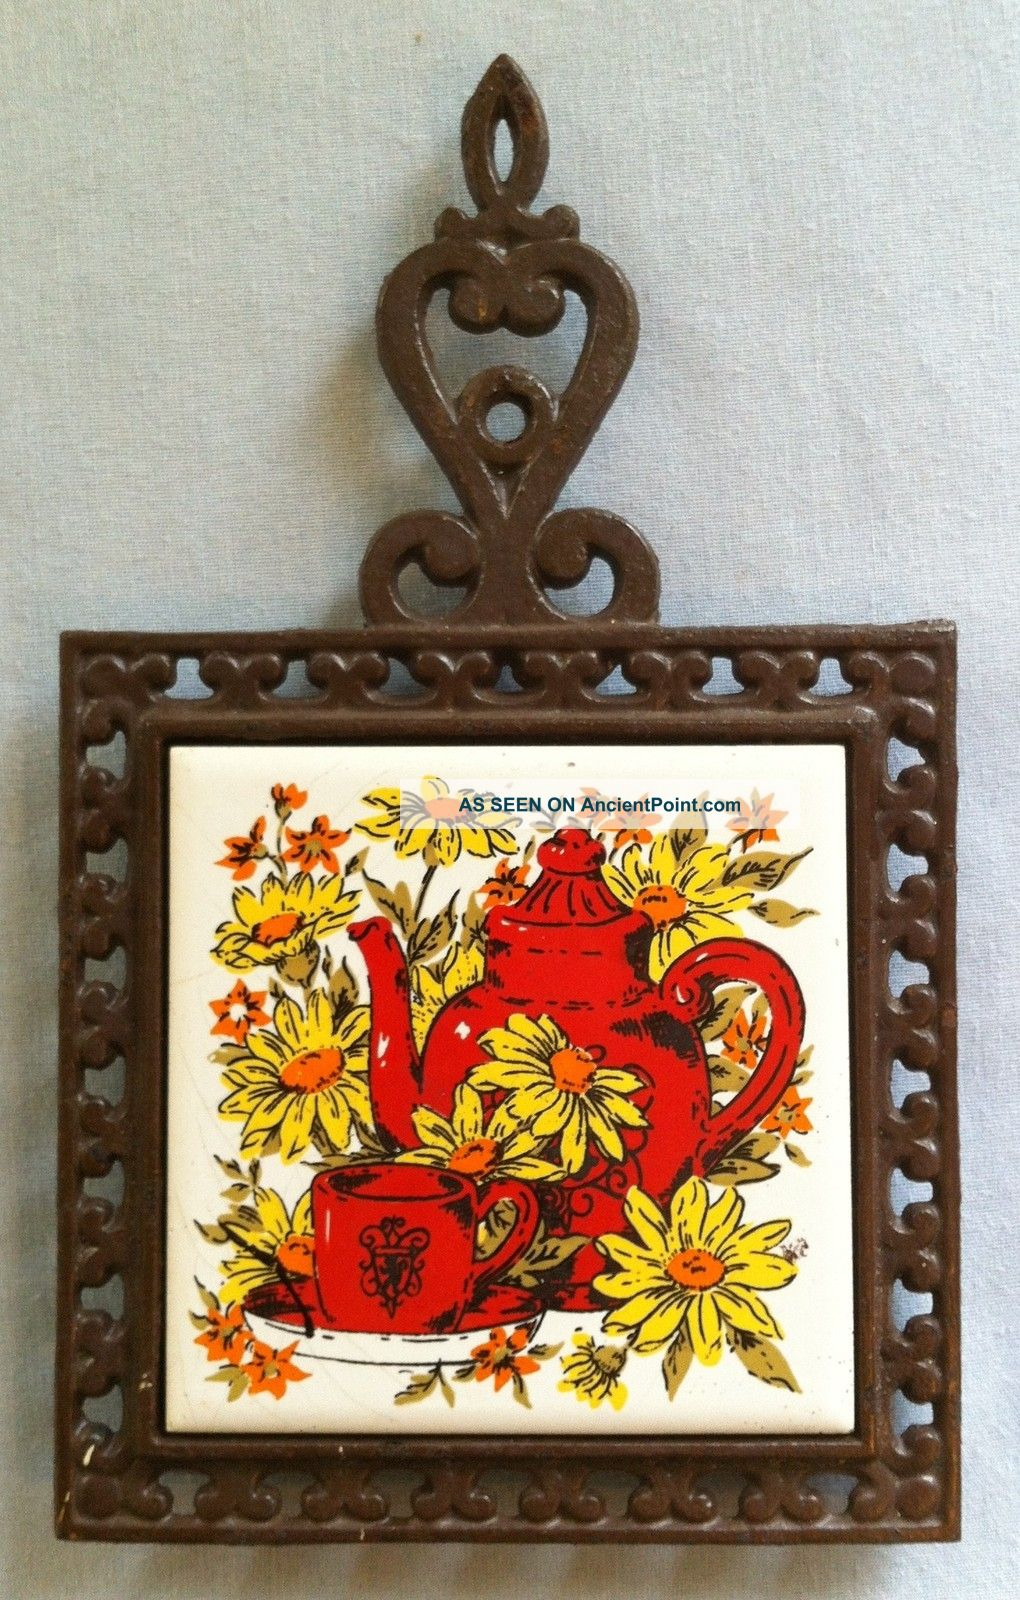 Vintage Cast Iron Tile Trivet (hd E) Teapot & Sunflower Design Trivets photo